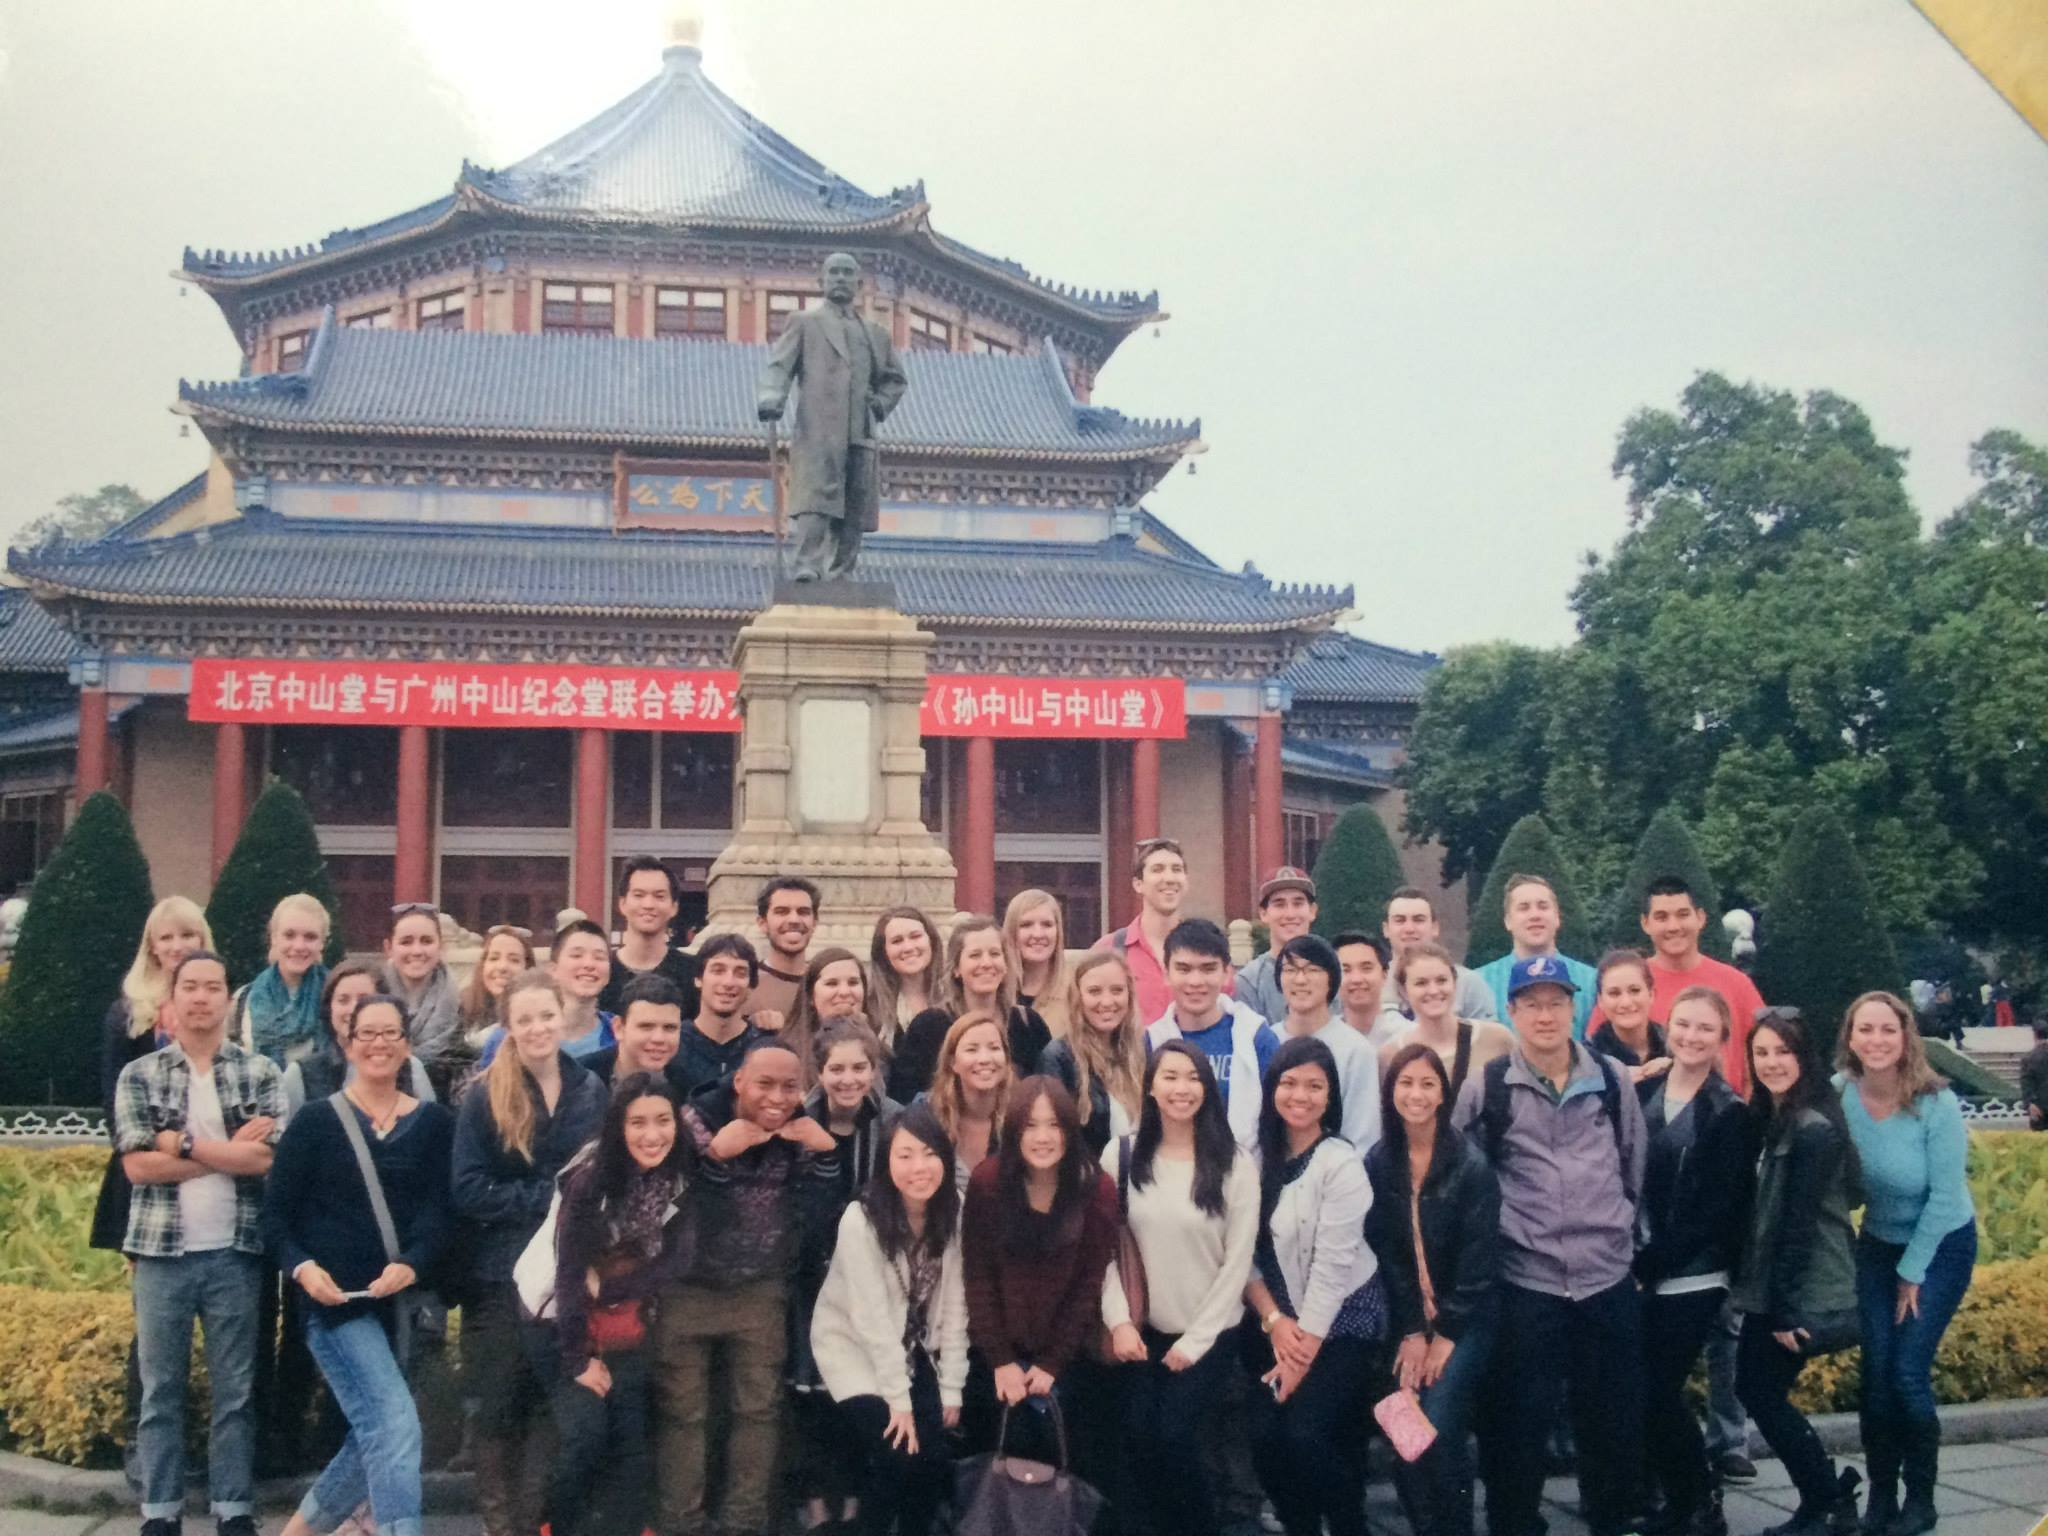 The study abroad group in Guangzhou, China.